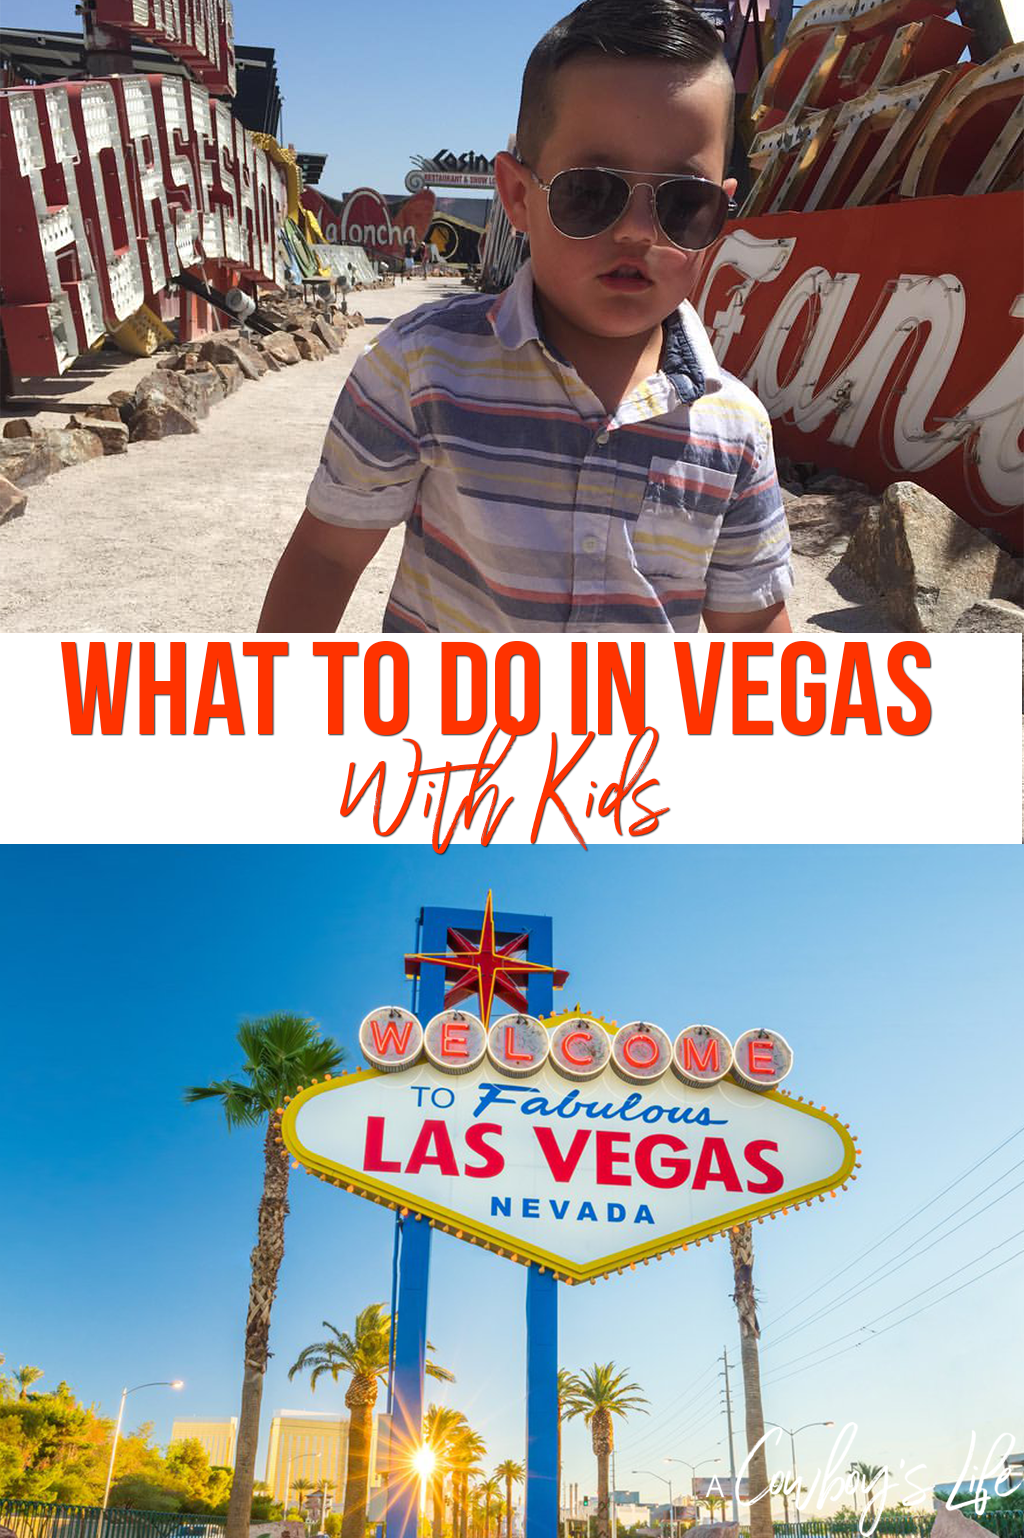 The ultimate guide of what to do in Las Vegas with kids